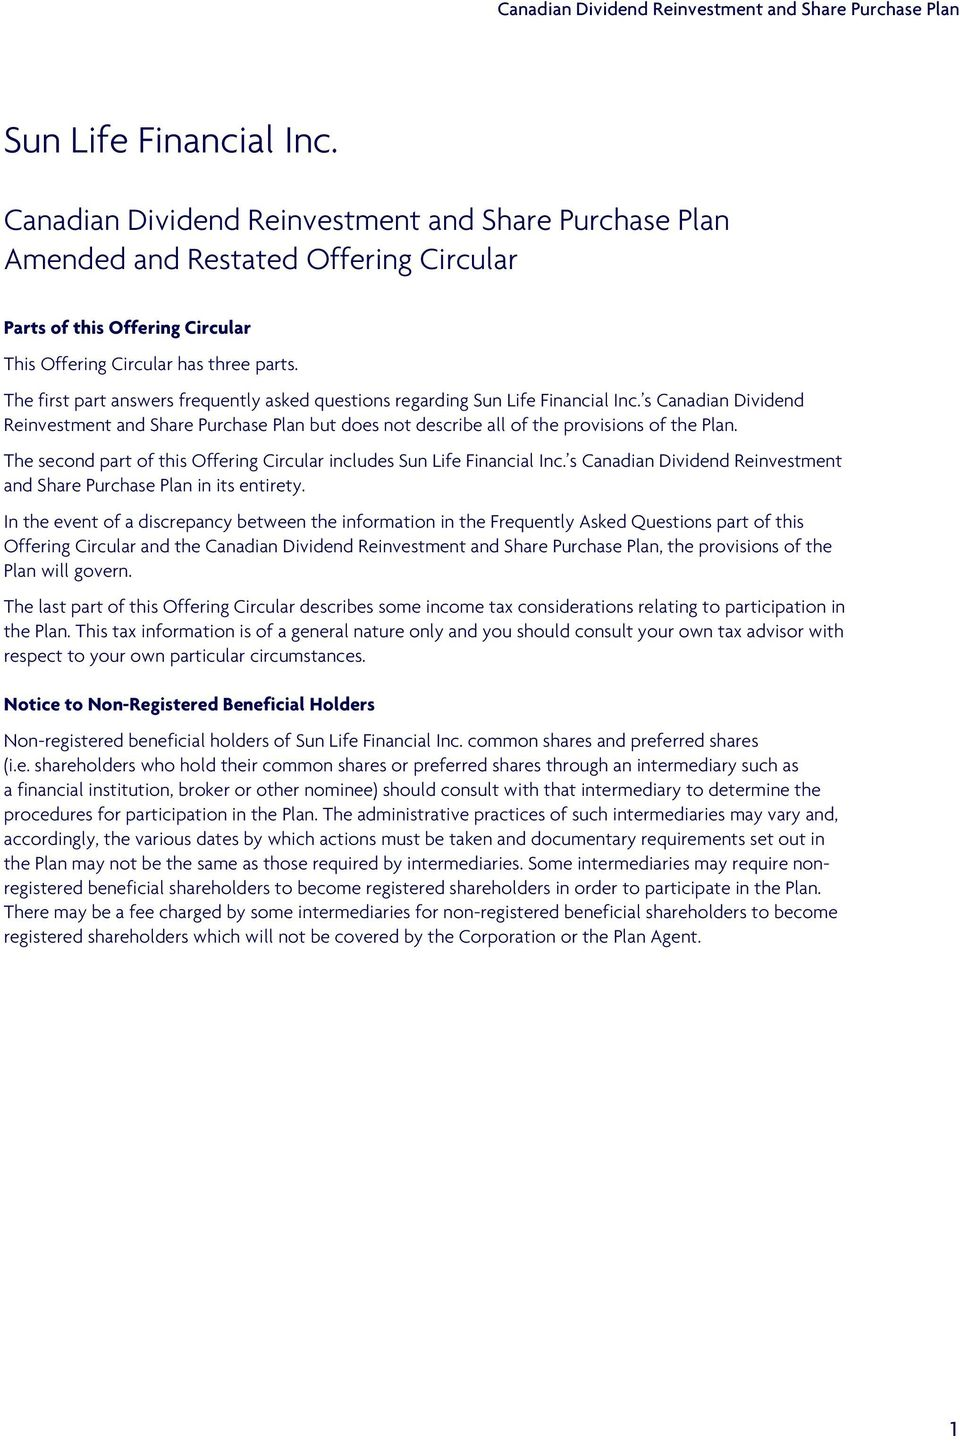 The second part of this Offering Circular includes Sun Life Financial Inc. s Canadian Dividend Reinvestment and Share Purchase Plan in its entirety.